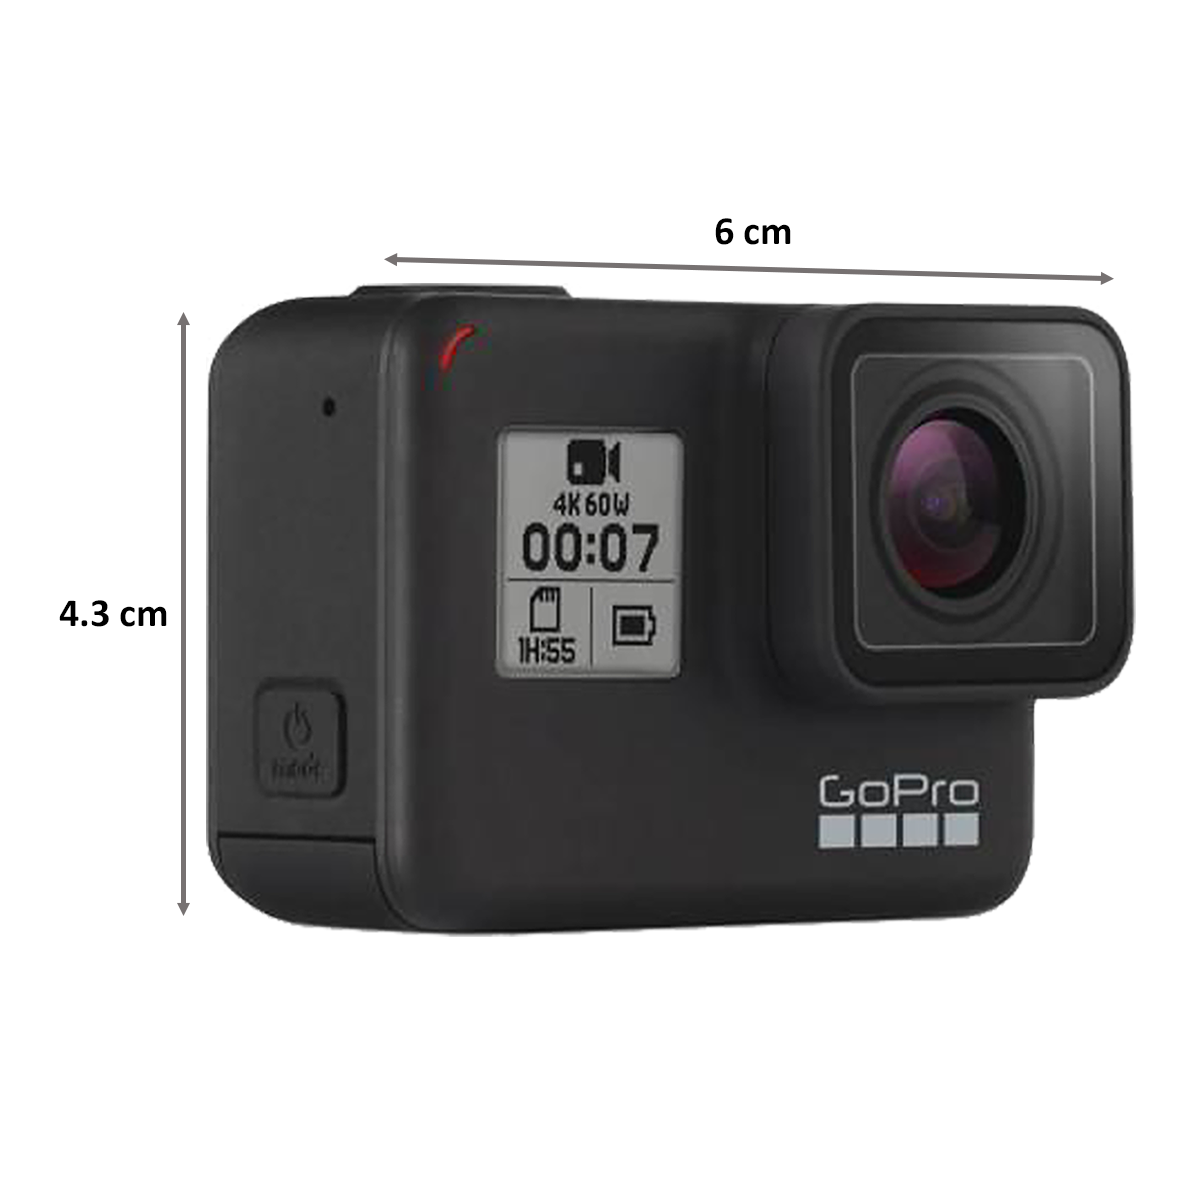 GoPro Hero 7 12 MP Action Camera With Holiday Bundle Pack (CHDRB-70, Black)_2